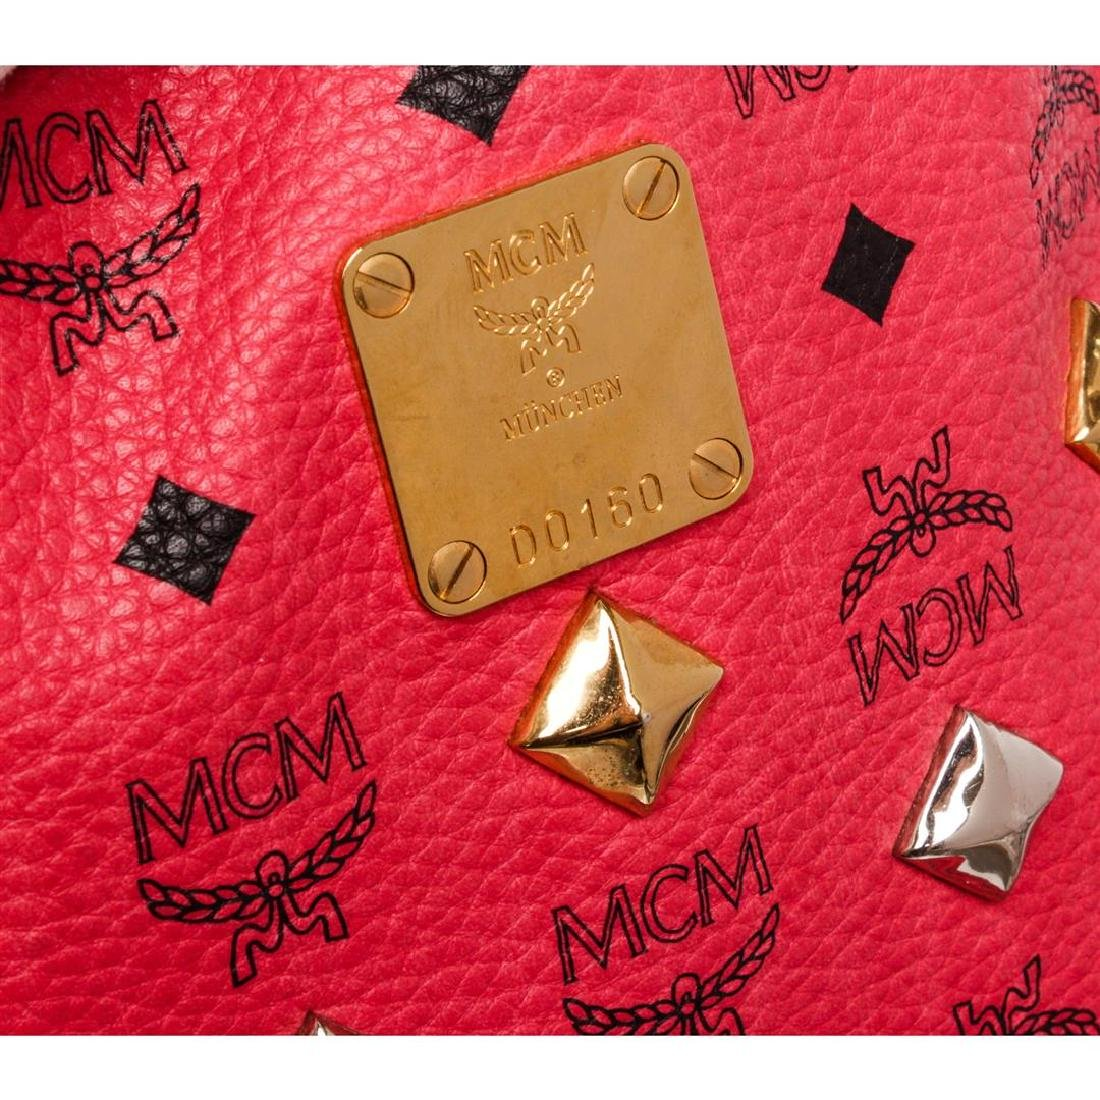 MCM Red Visetos Coated Canvas Leather Trim Studded - 8